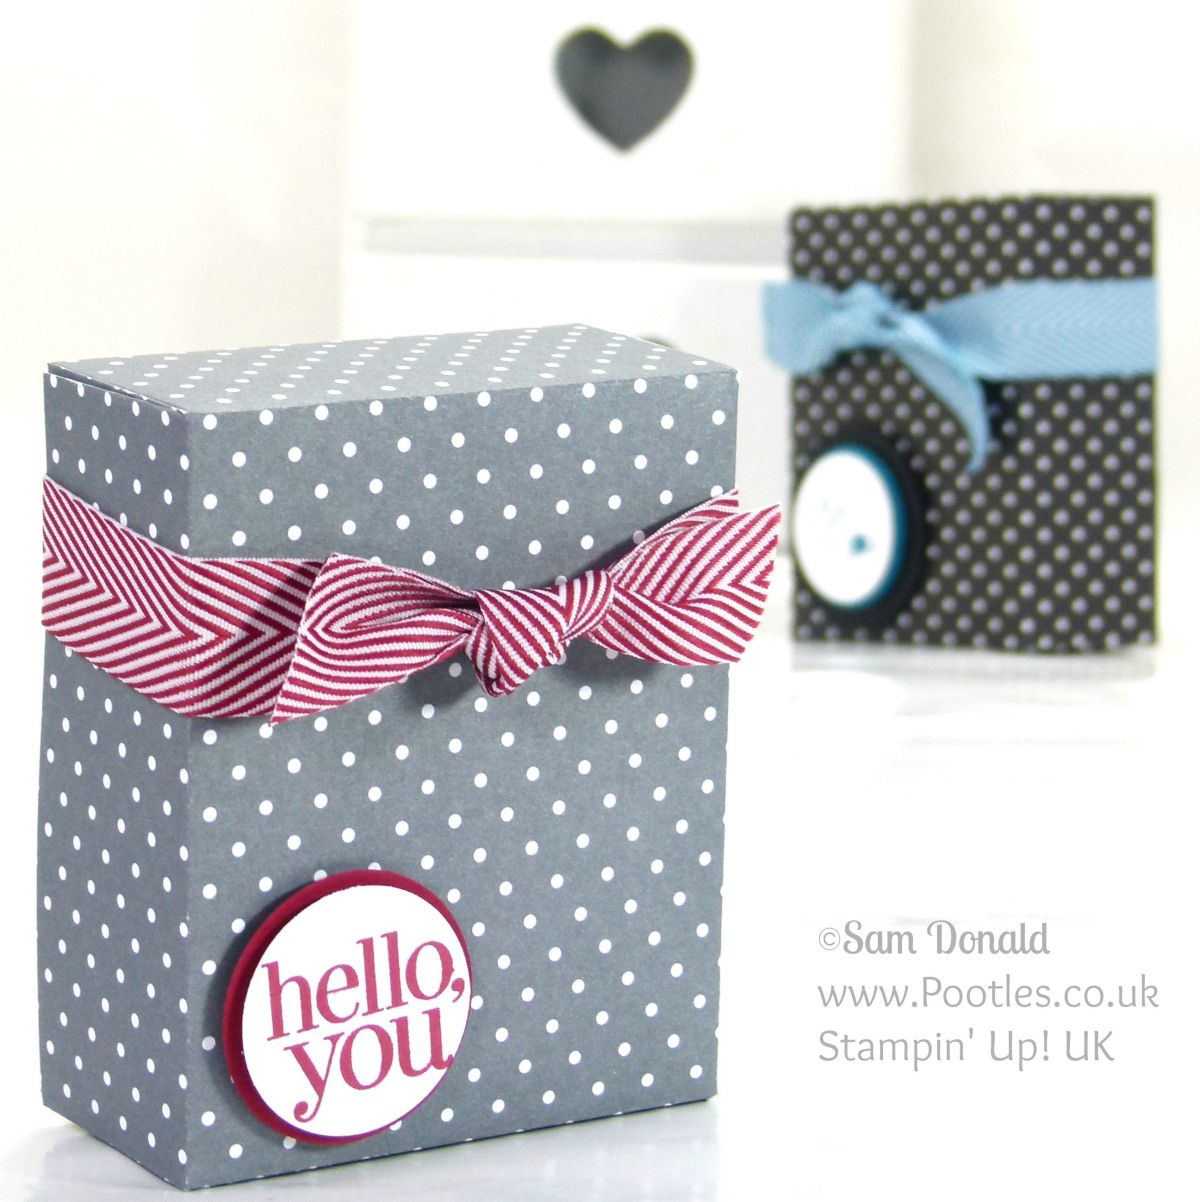 Stampin' Up! UK Independent Demonstrator Pootles. Paper Box Tutorial using Stampin' Up Designer Paper